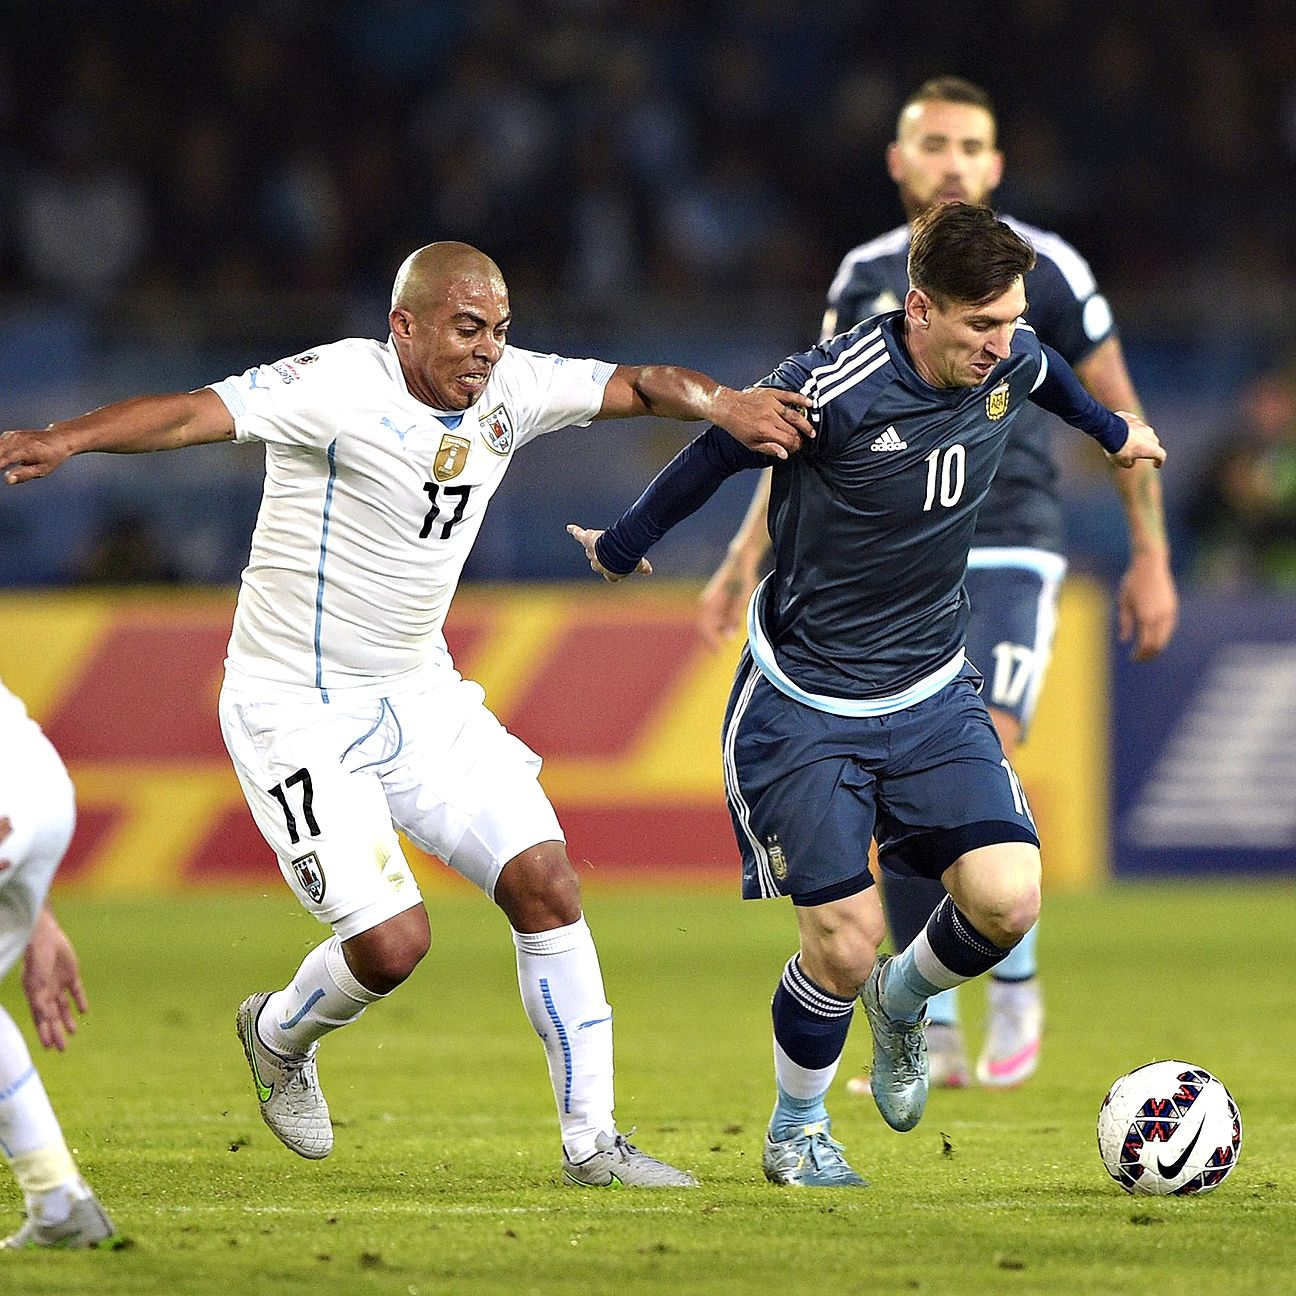 Lionel Messi and the high-powered Argentina attack have been contained thus far in Copa America play.